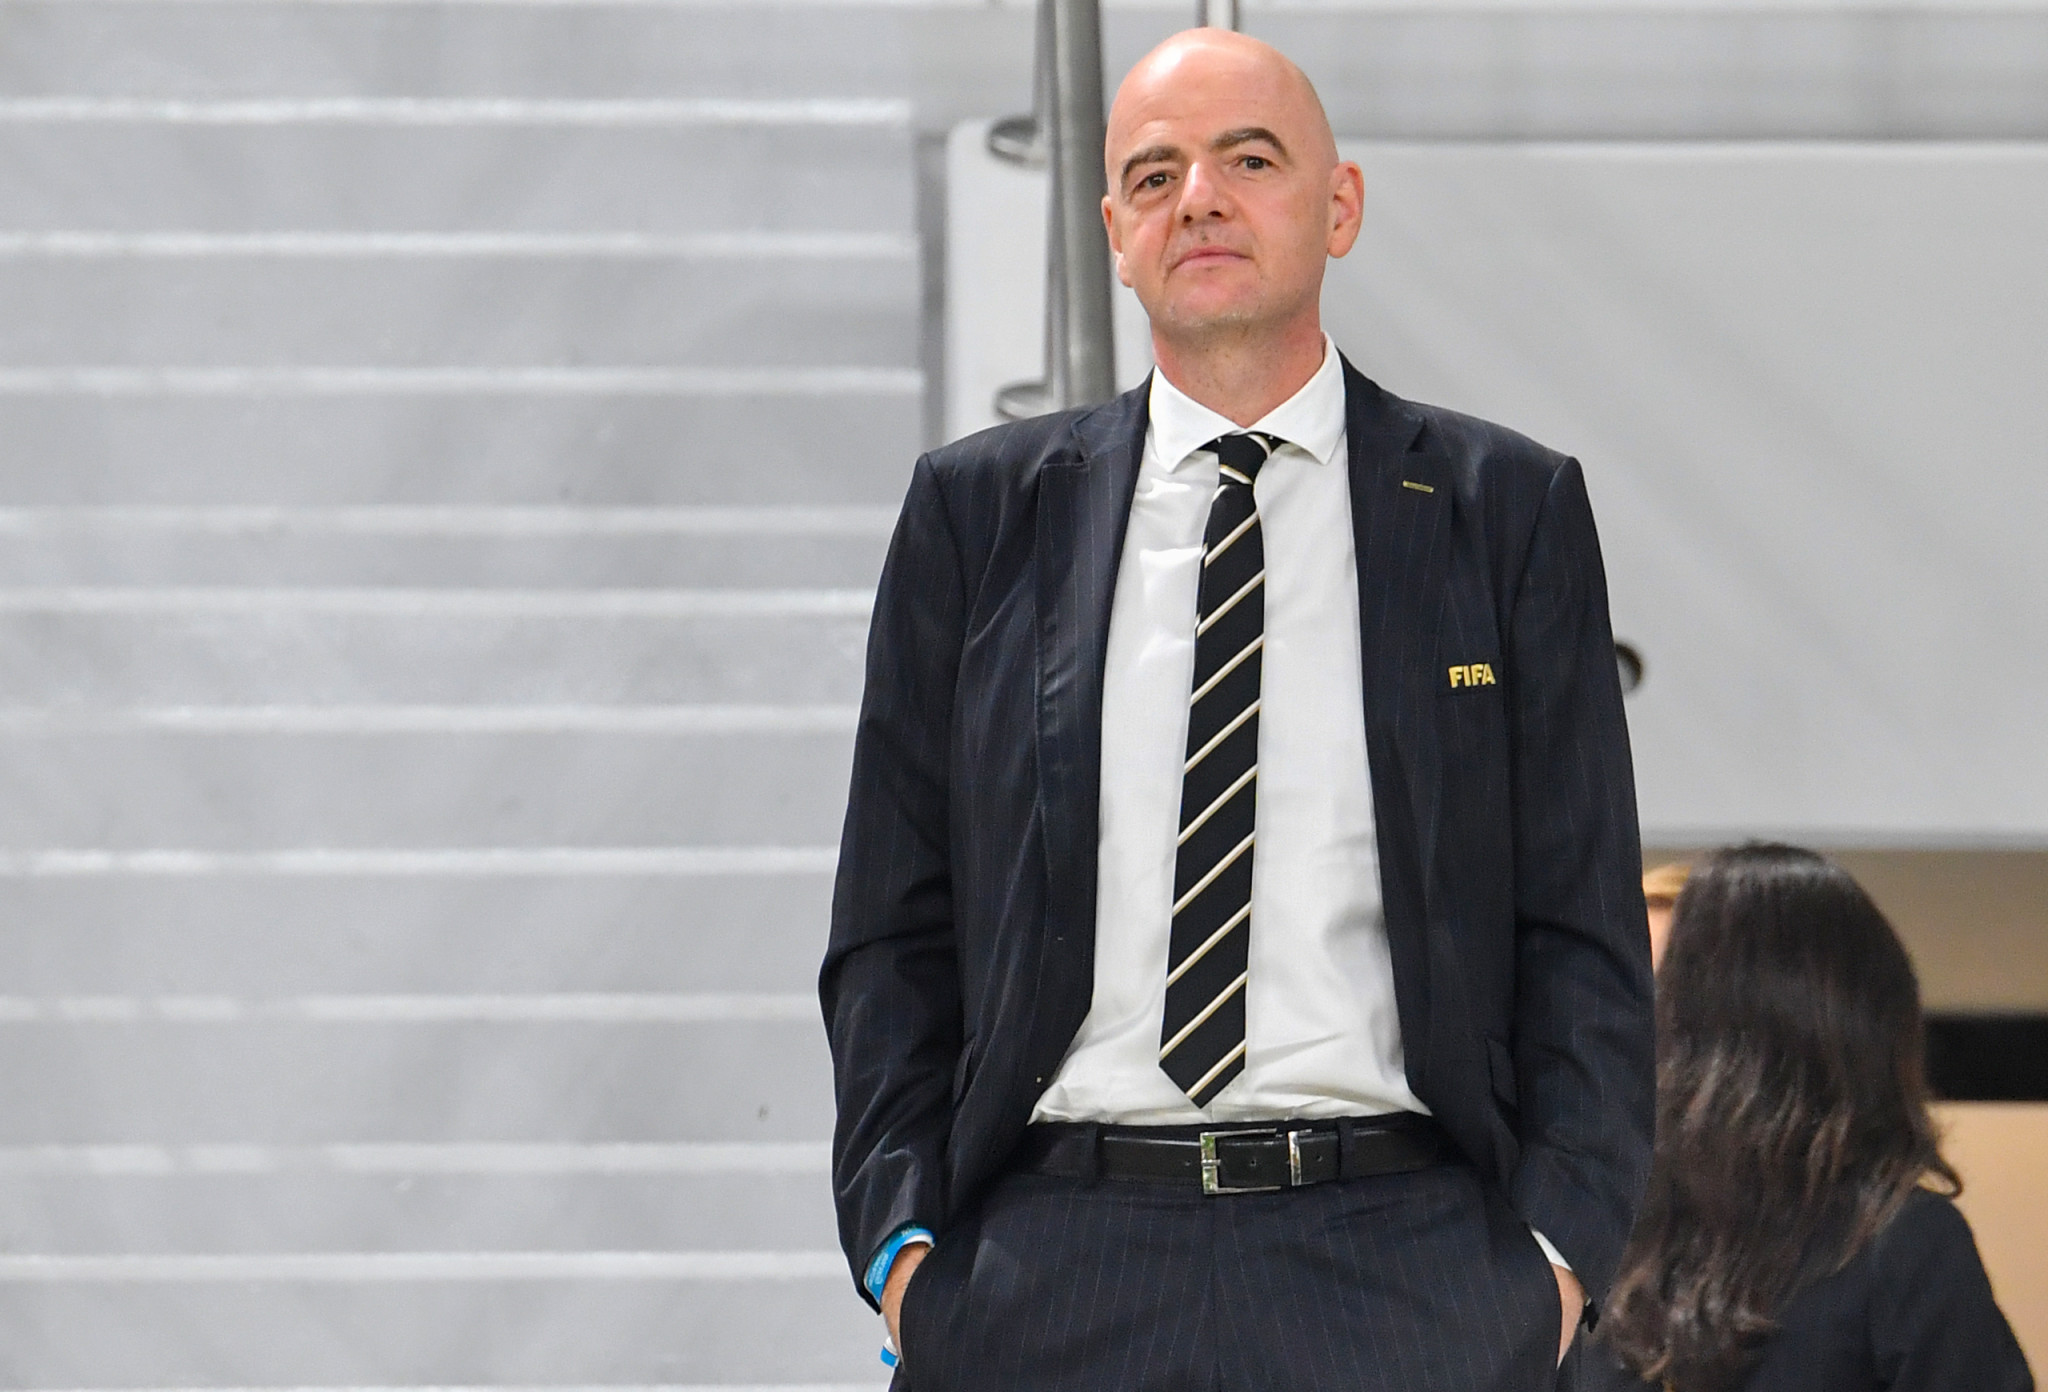 FIFA President Gianni Infantino is a key figure in the decision-making process, but there are others who also hold sway ©Getty Images